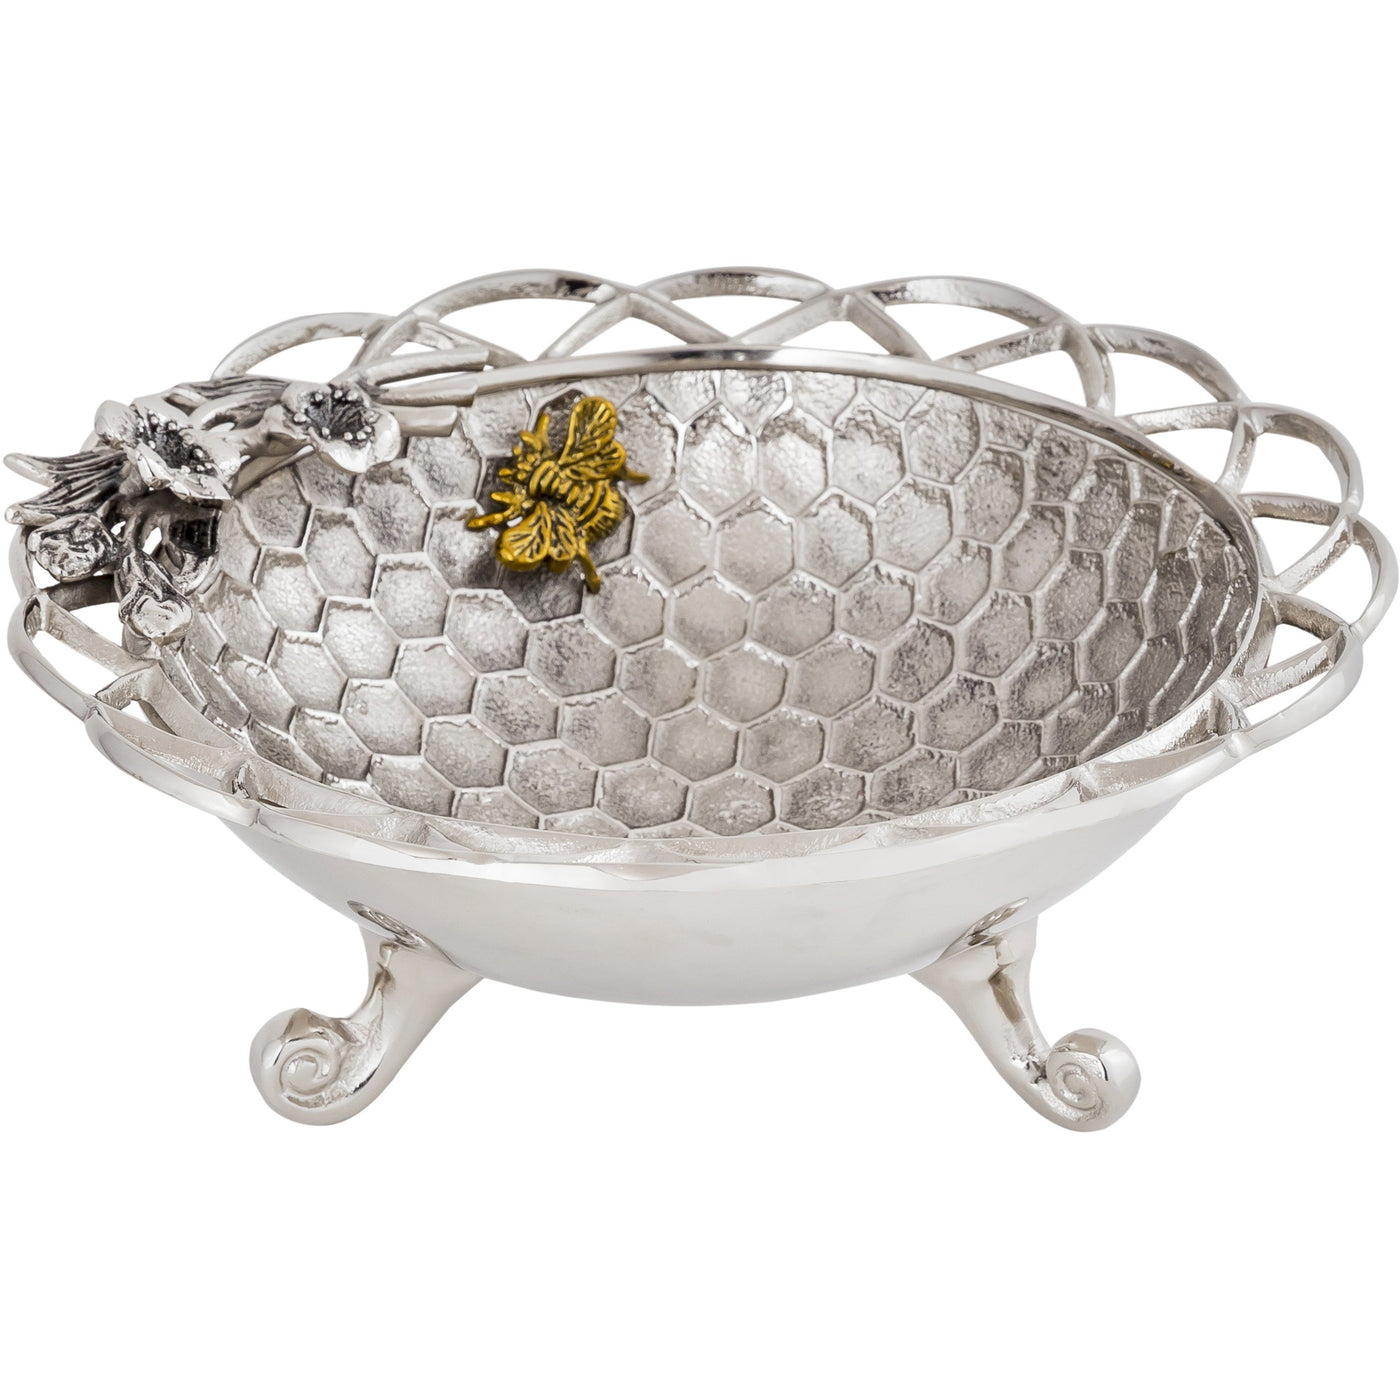 Bumble Bee Centerpiece Bowl